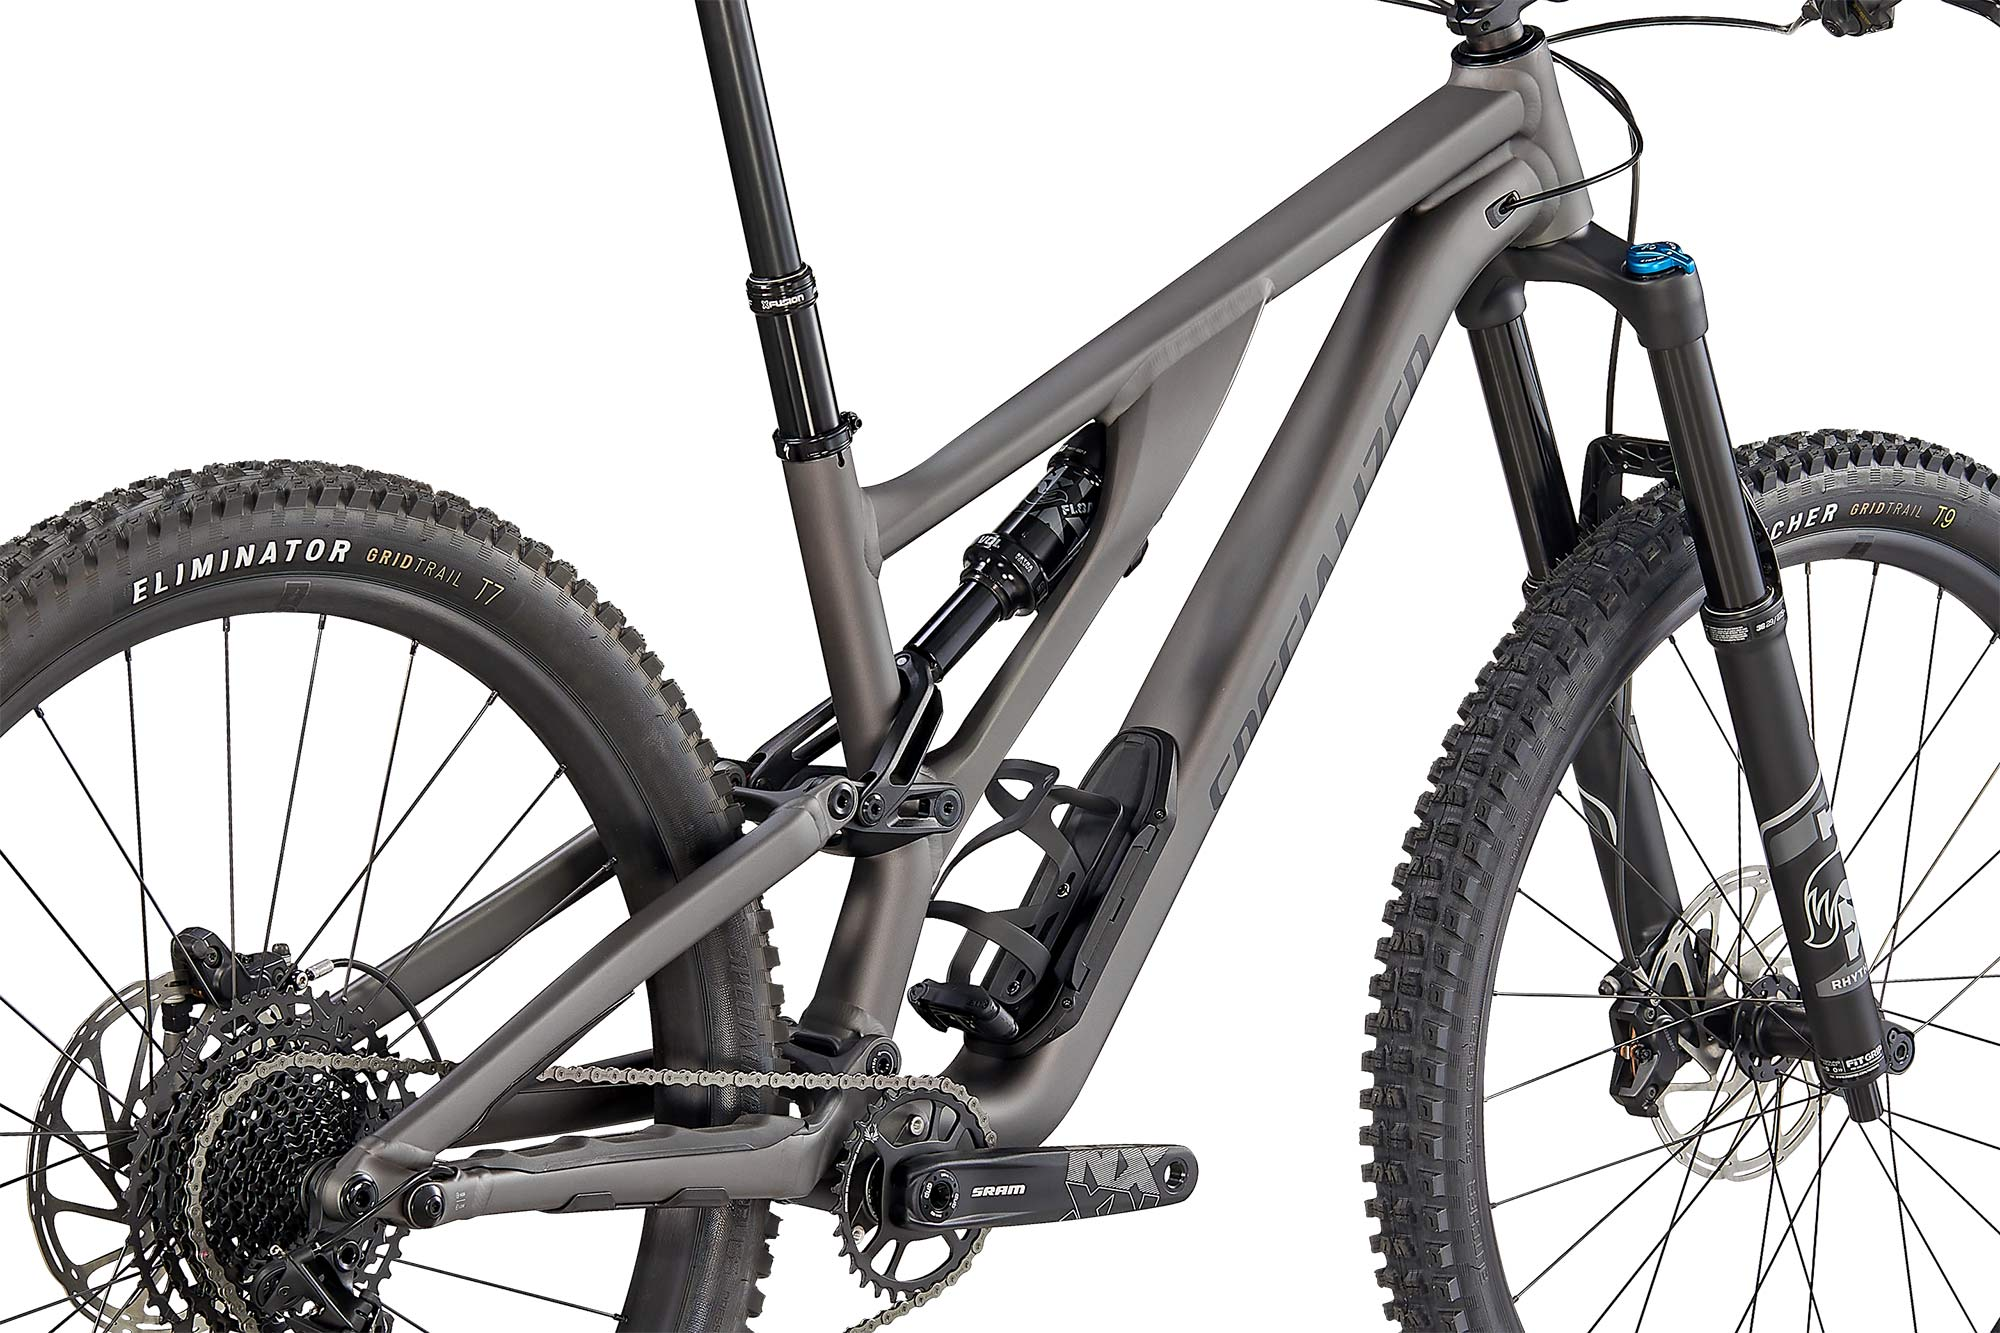 Specialized Stumpjumper EVO Alloy lowers cost of Stumpy trail fun while carbon gets pricier! thumbnail